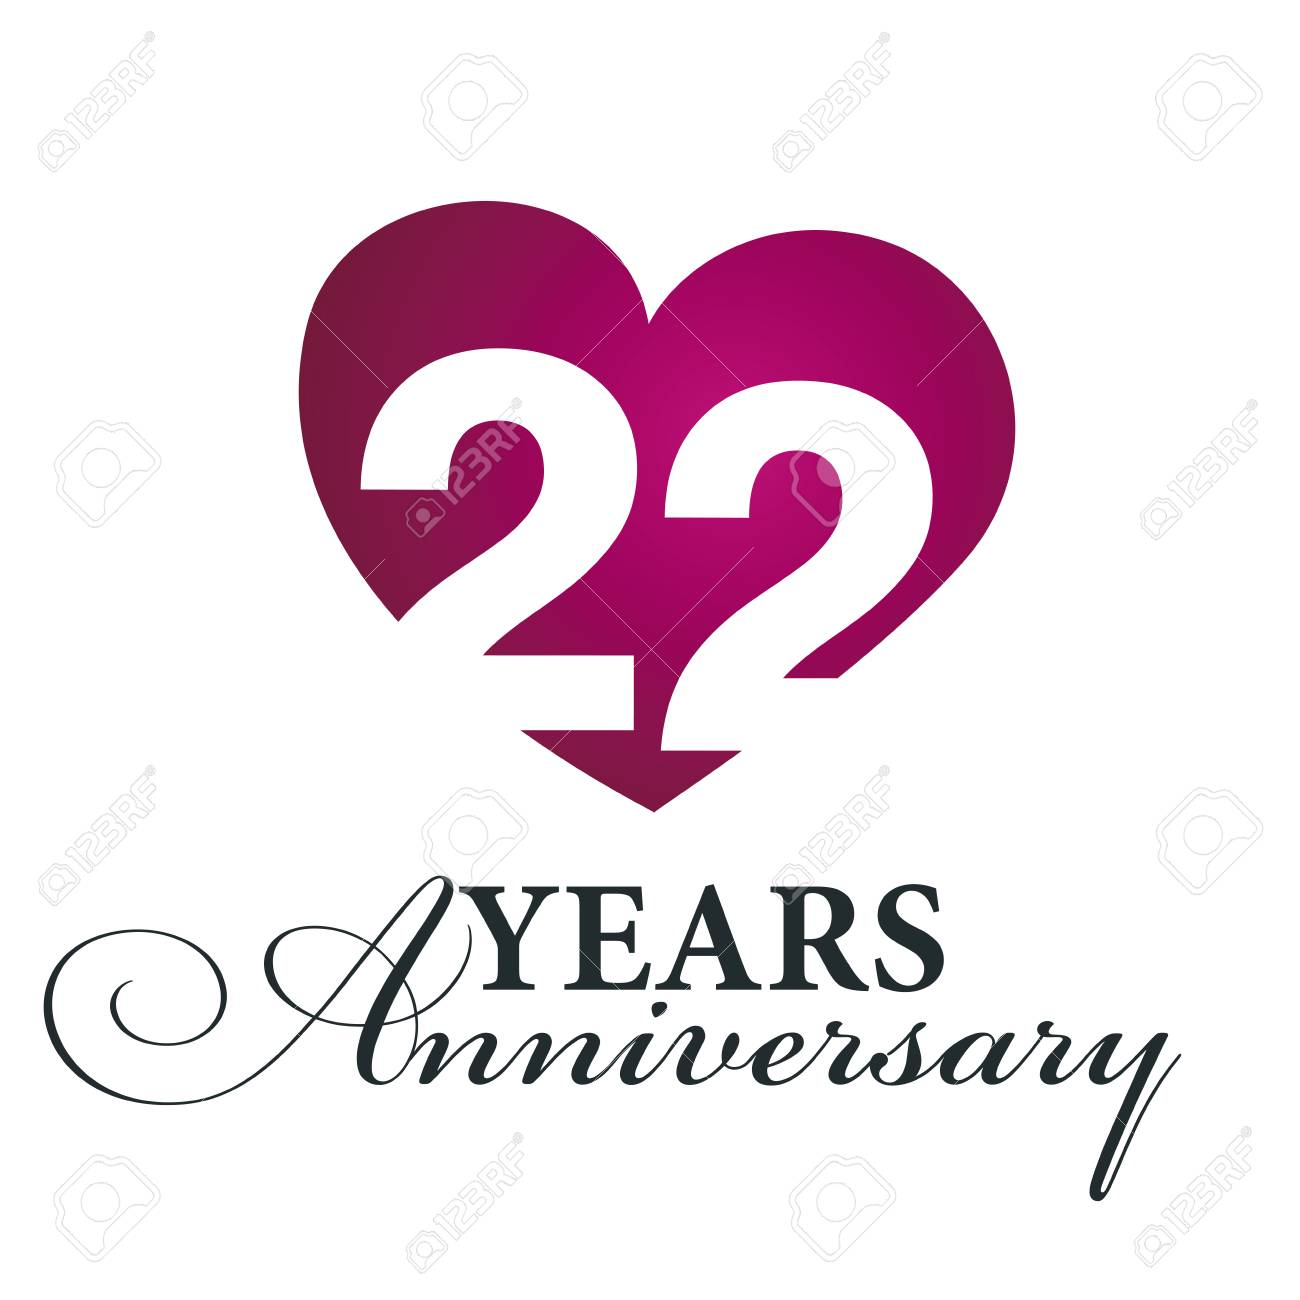 22 years anniversary symbol royalty free cliparts vectors and